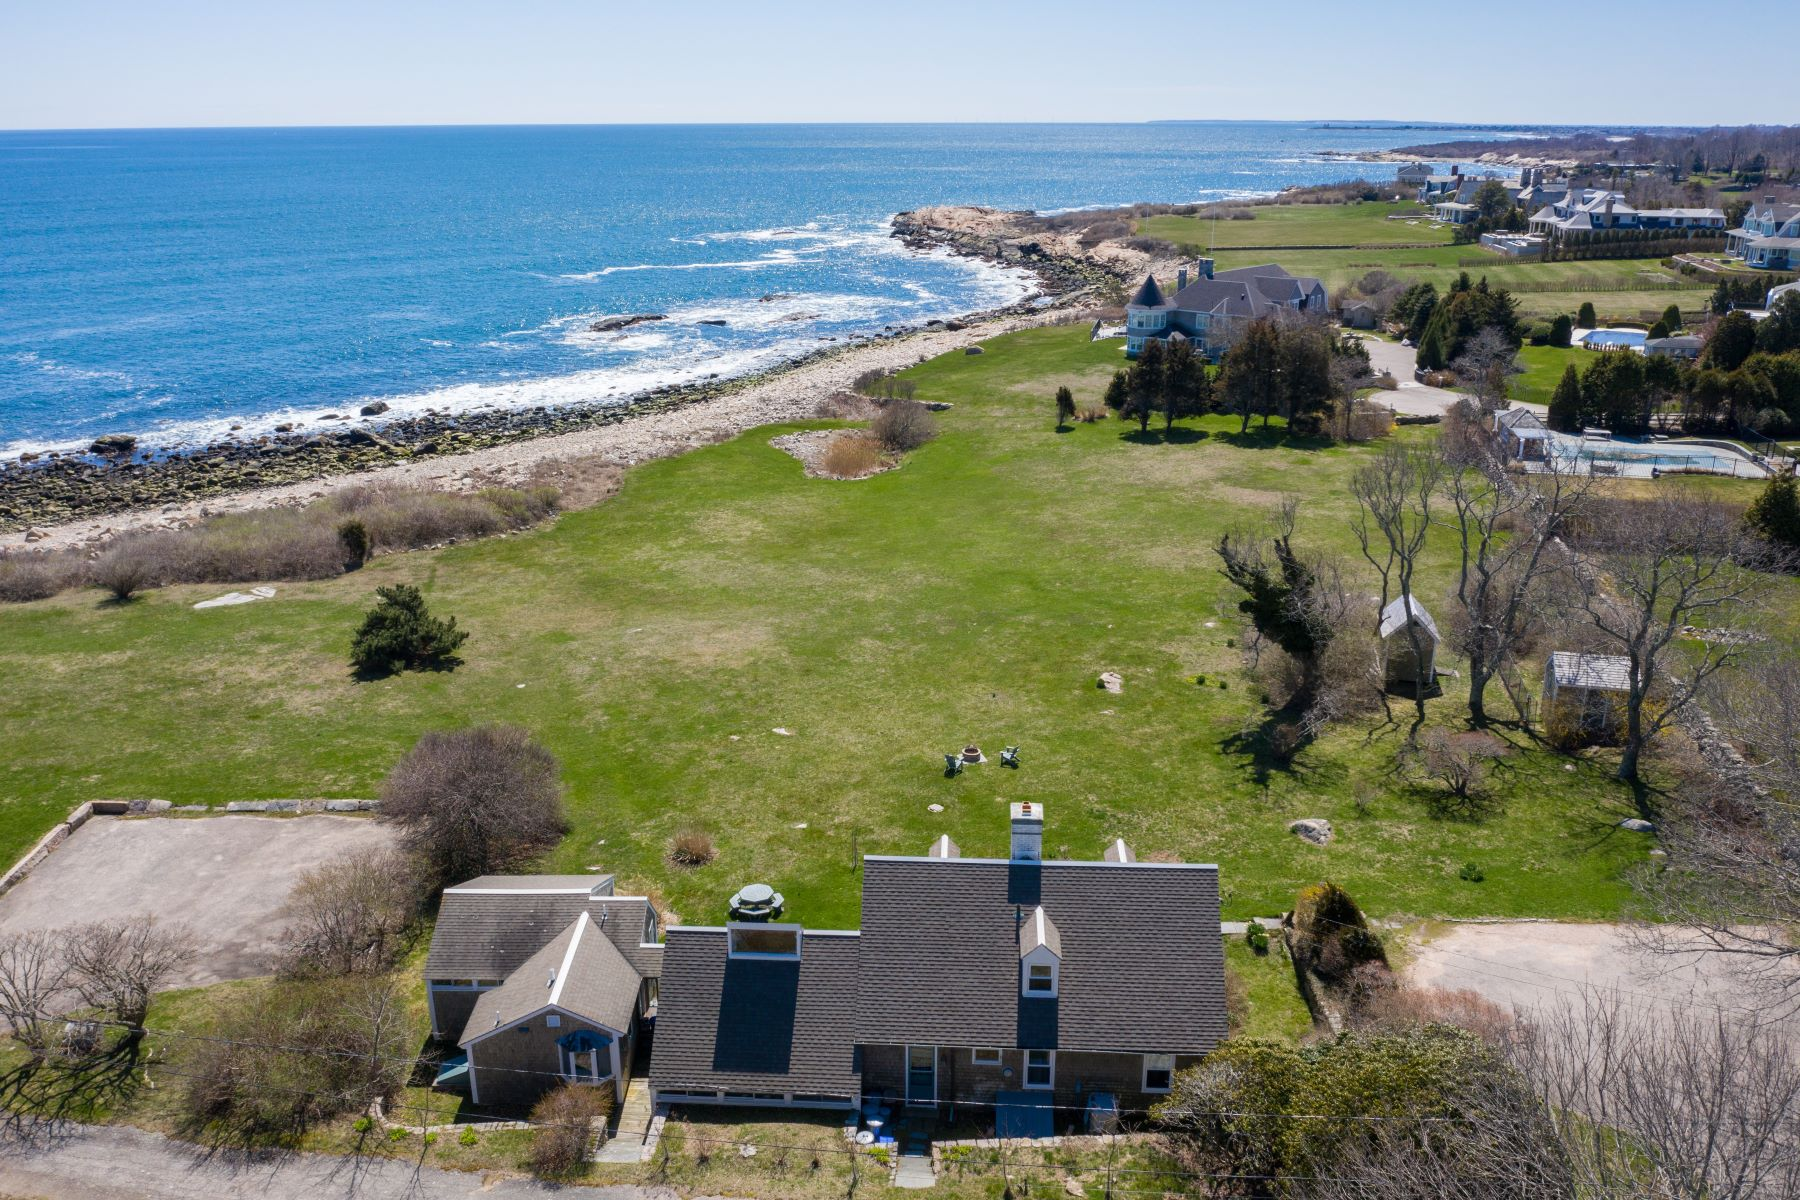 Single Family Homes for Sale at 12 Sea Gate Drive Narragansett, Rhode Island 02882 United States